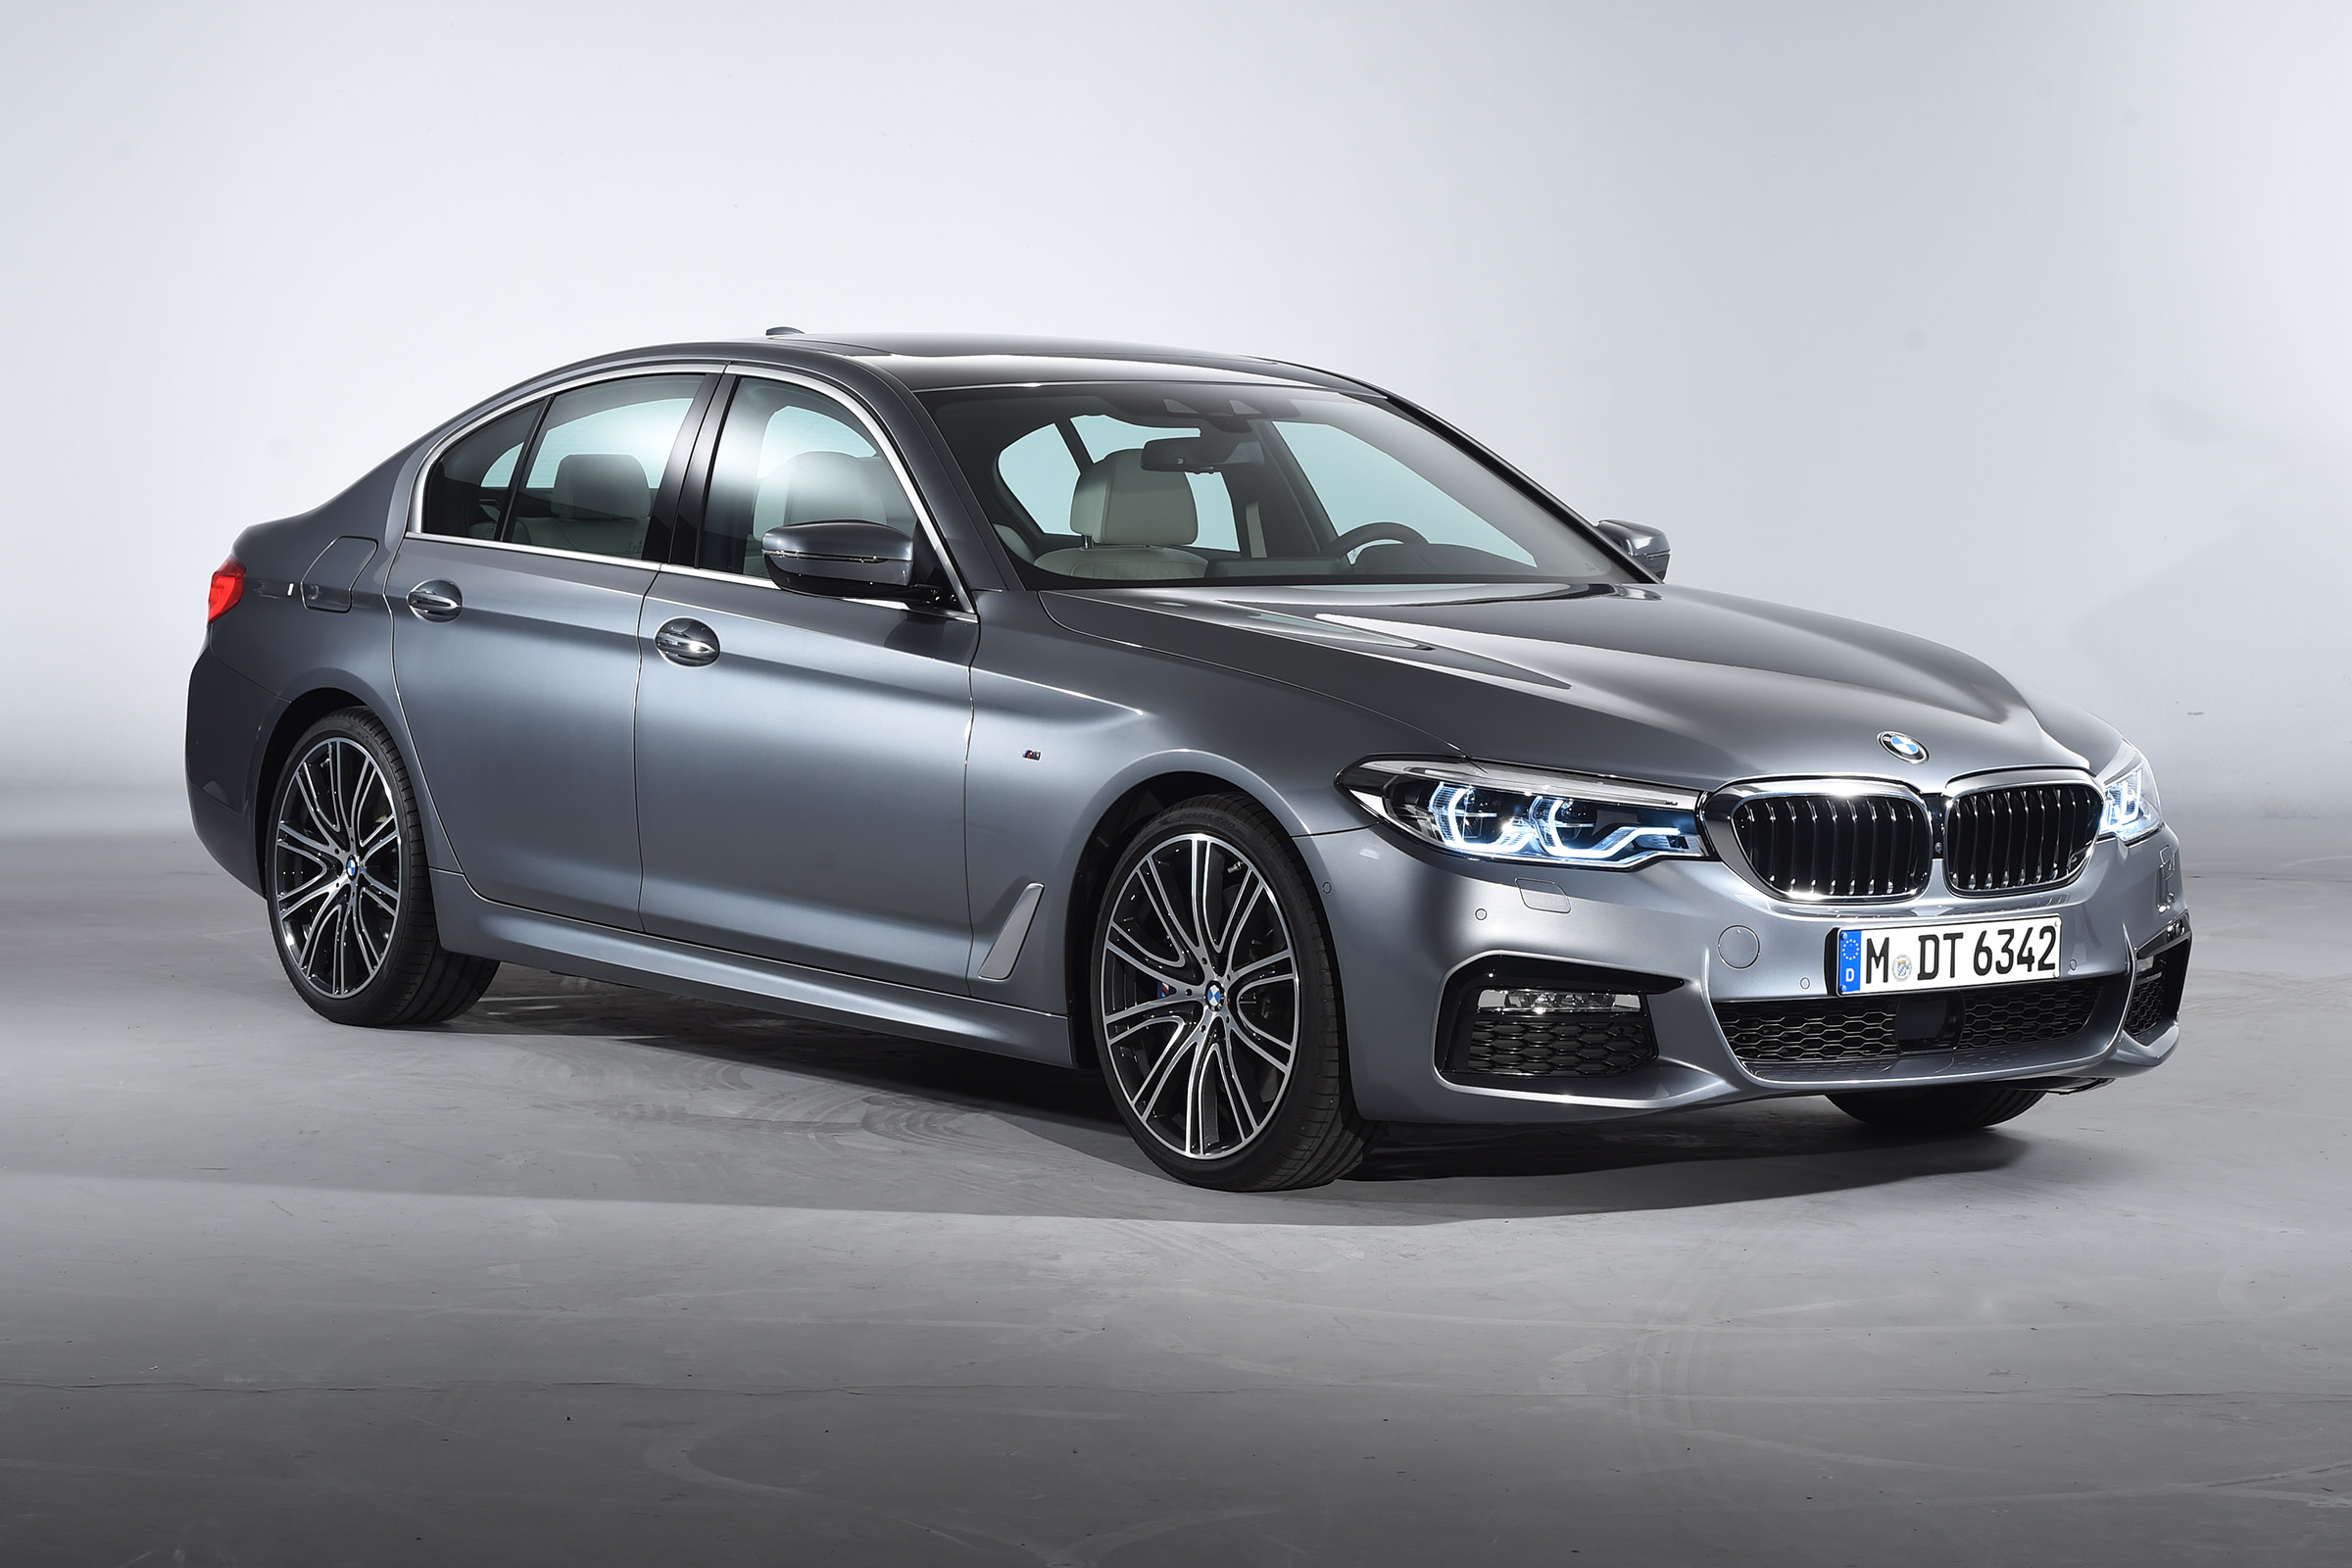 New Bmw 5 Series 2017 Pricing And Specs Announced Auto Express